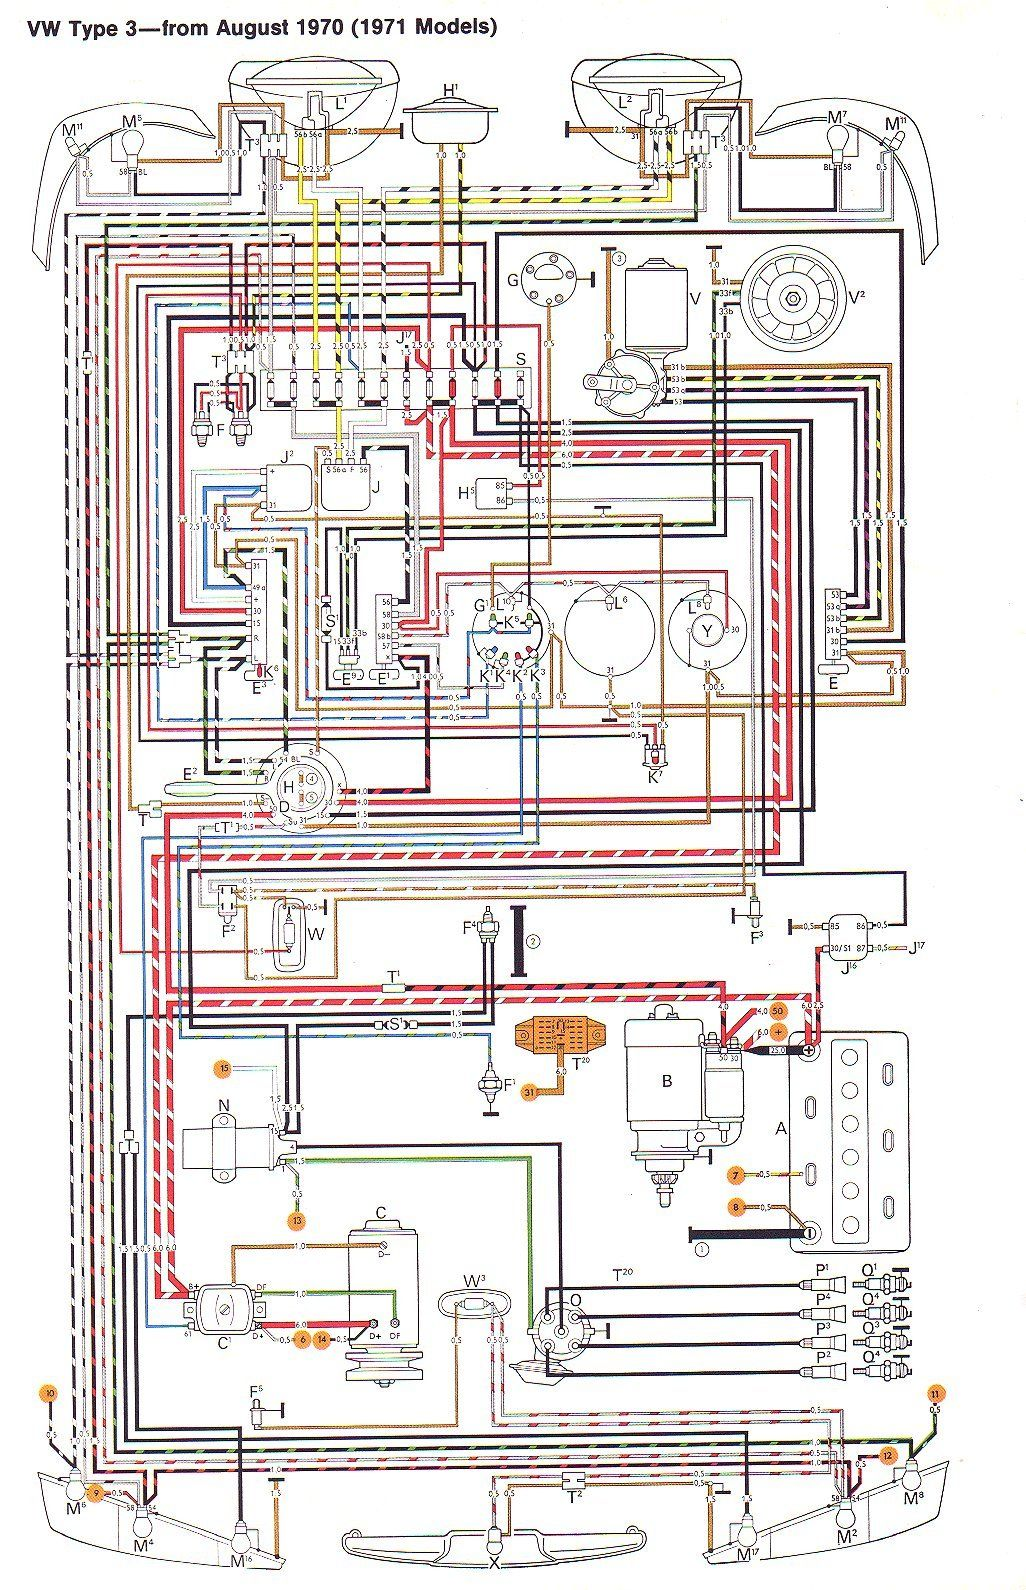 71 Beetle Engine Wiring Diagram Free For You Fuse Box 1974 Super Vw T3 Ruthie Pinterest Beetles Cars And Rh Com Speedo 74